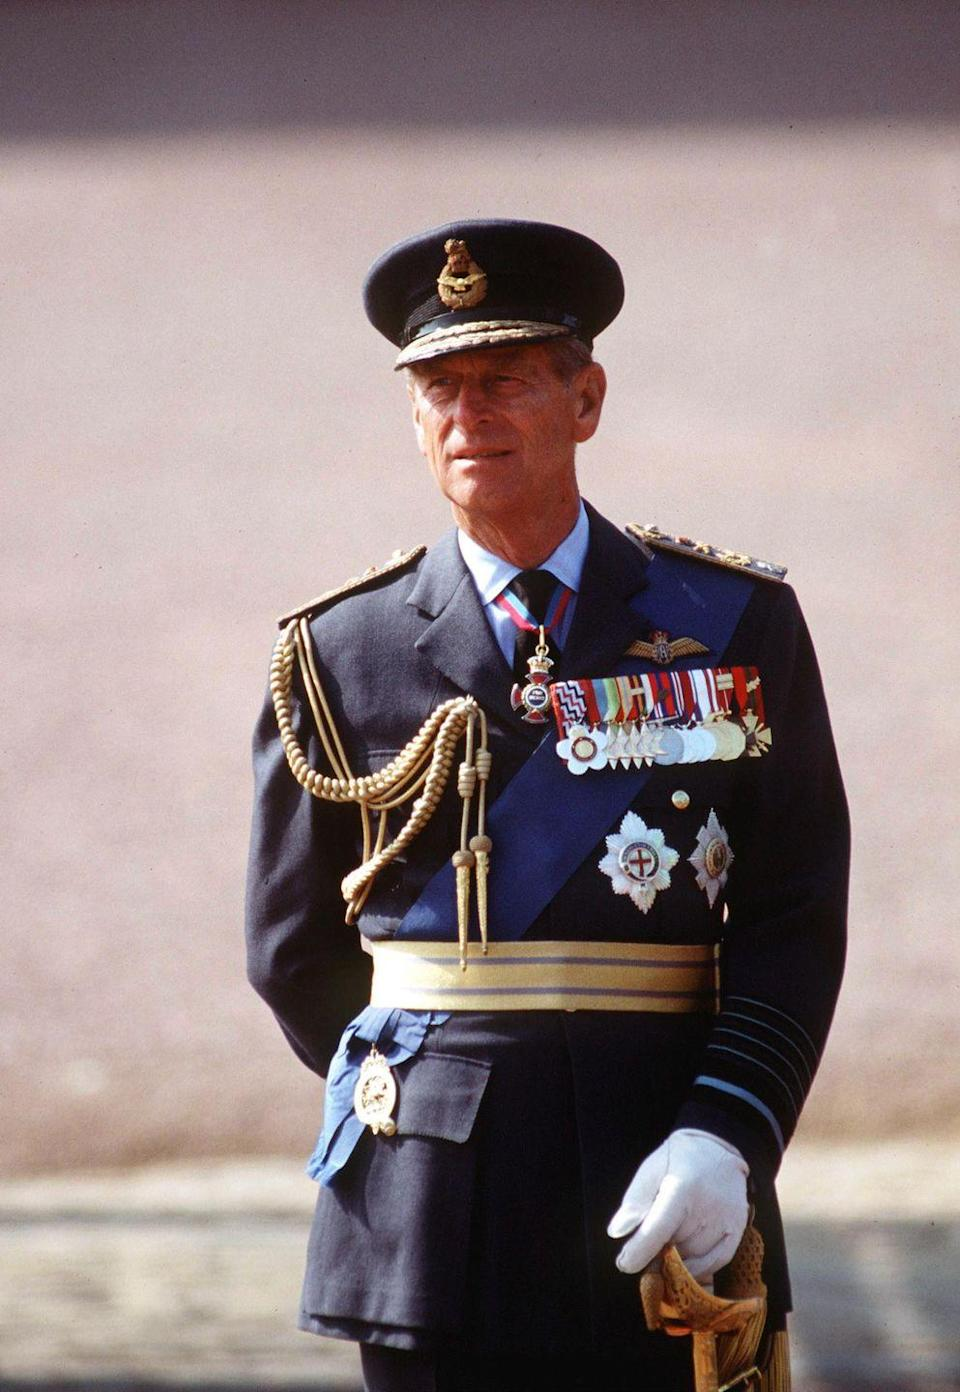 <p>Prince Philip in full ceremonial uniform at a Battle Of Britain fly-past in the early 90s.</p>